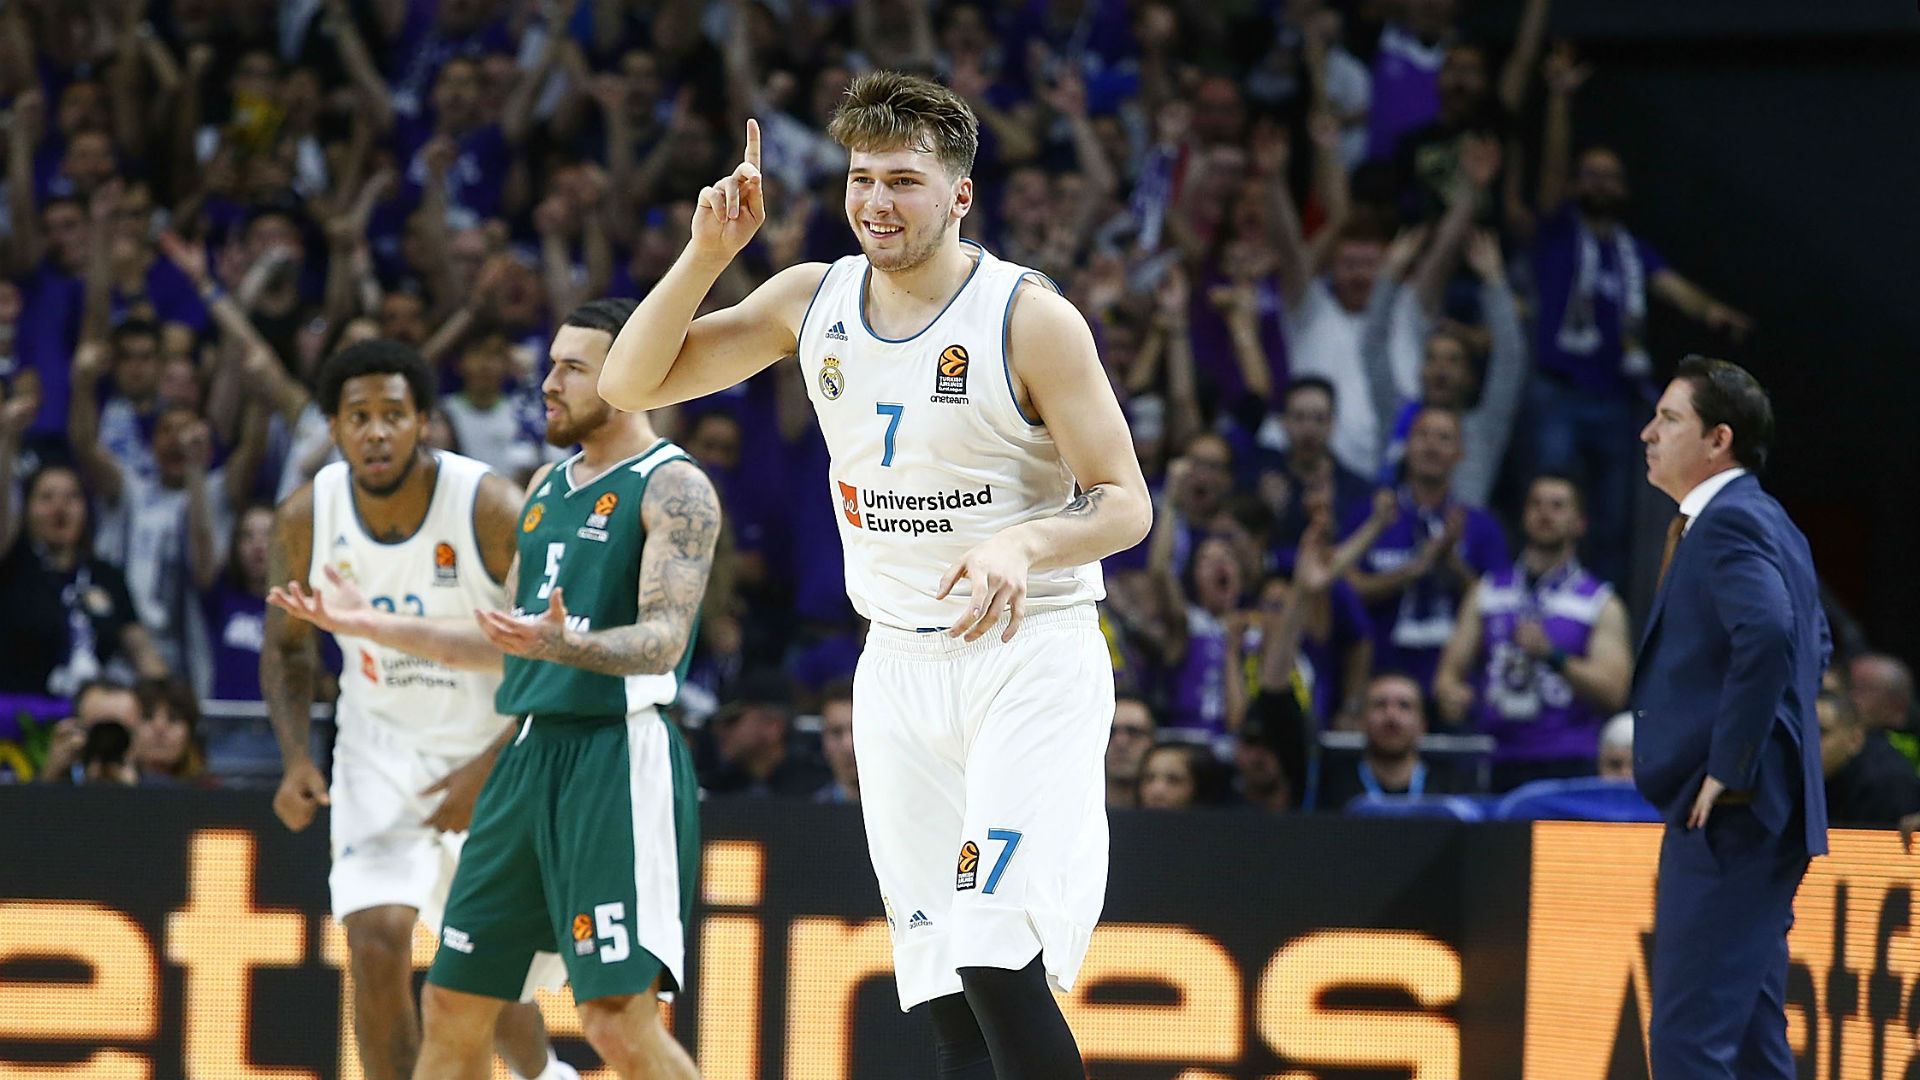 2018 Nba Draft Latest News On Suns Strategy For Top Pick